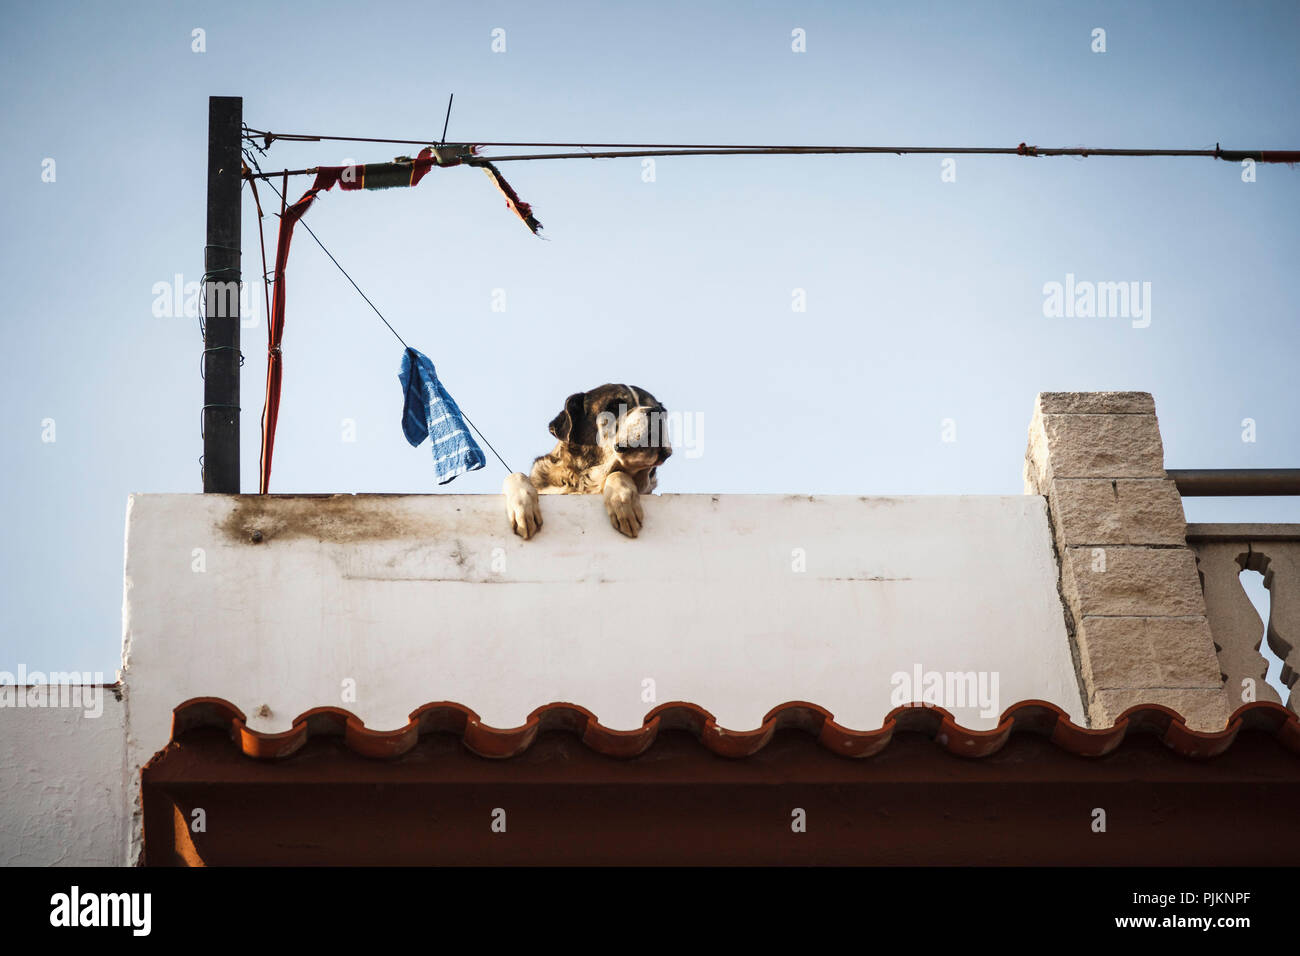 A big dog looking over a wall and observing the surroundings - Stock Image